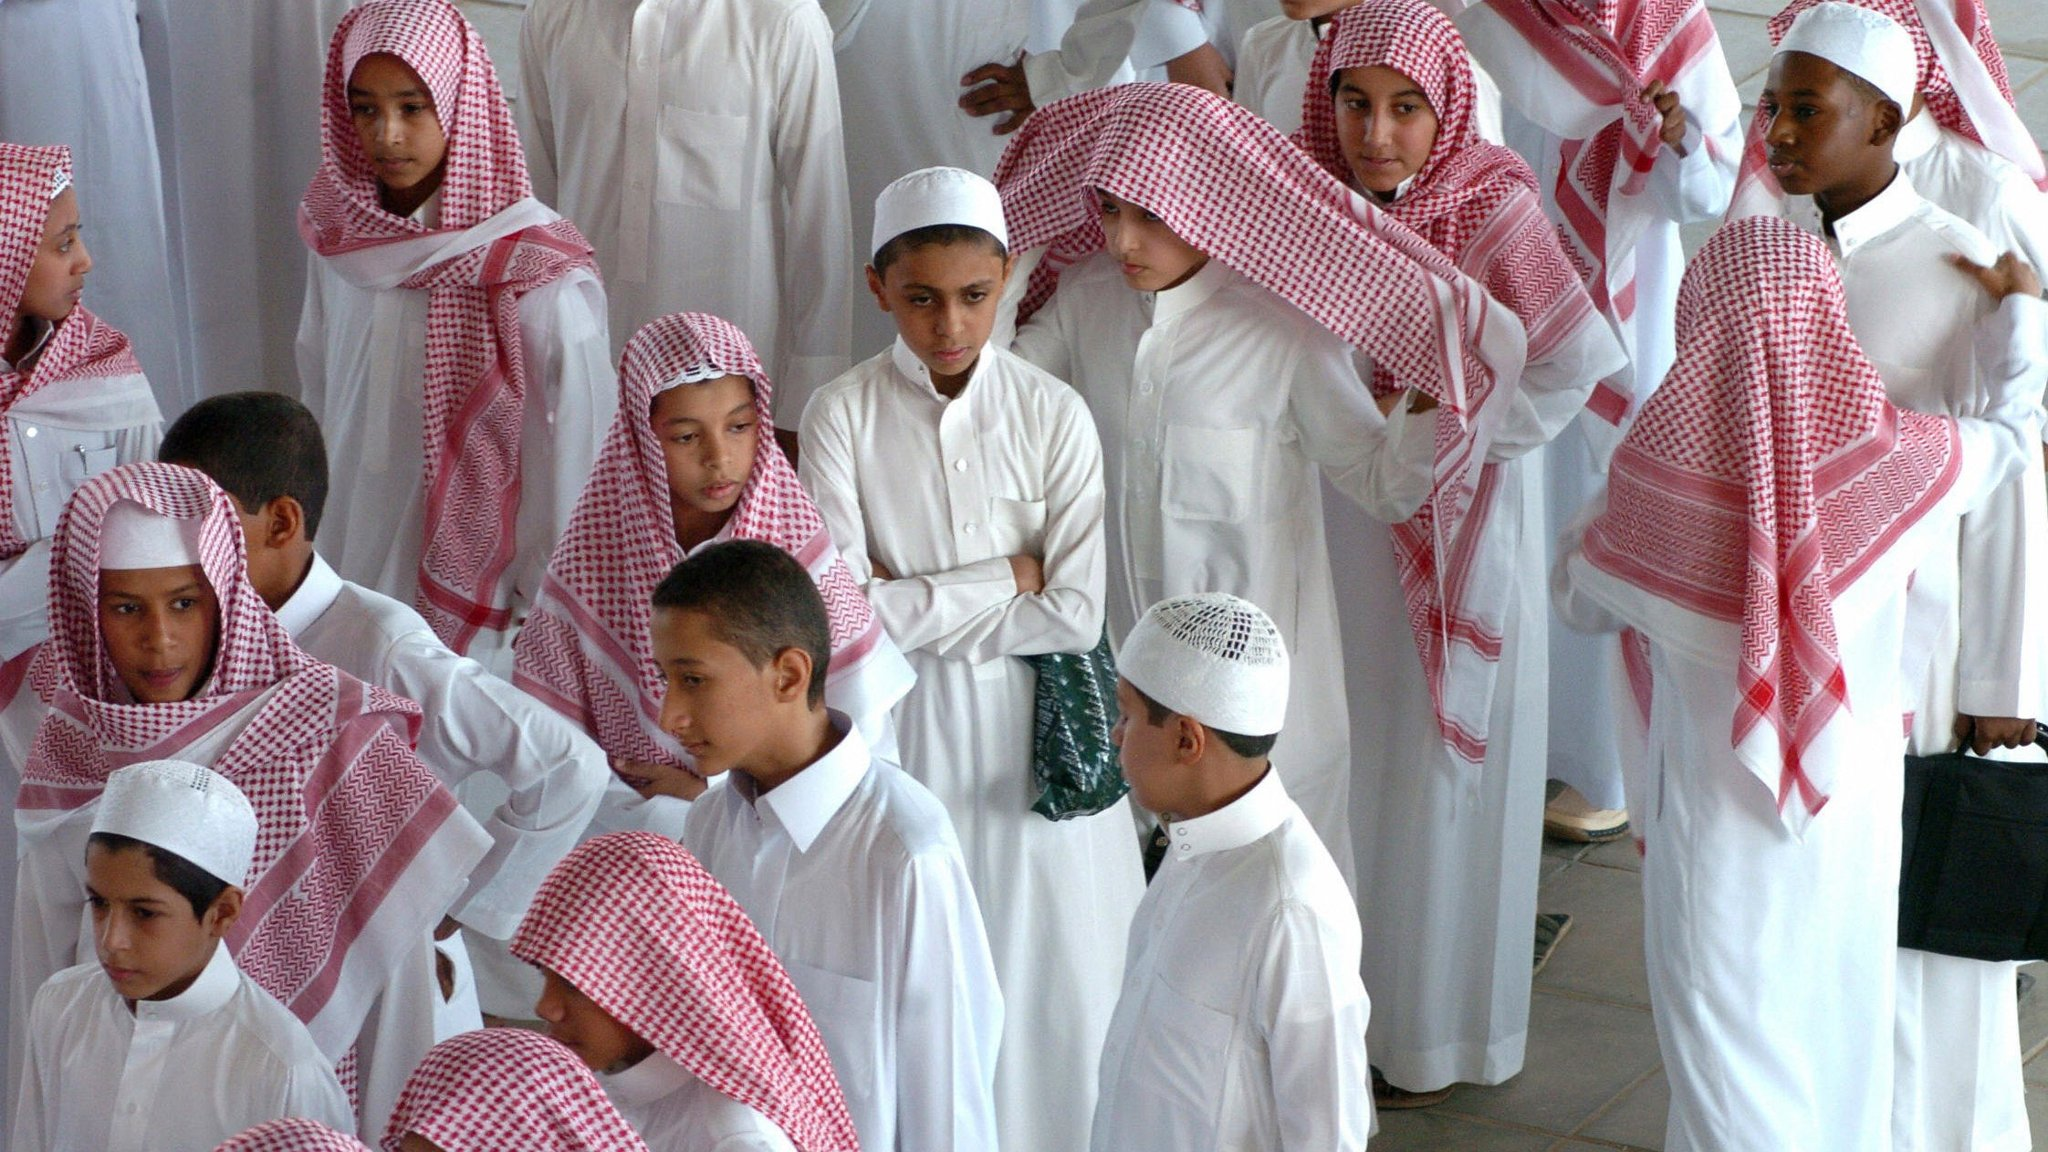 Saudi Arabia struggles to check extremism in schools